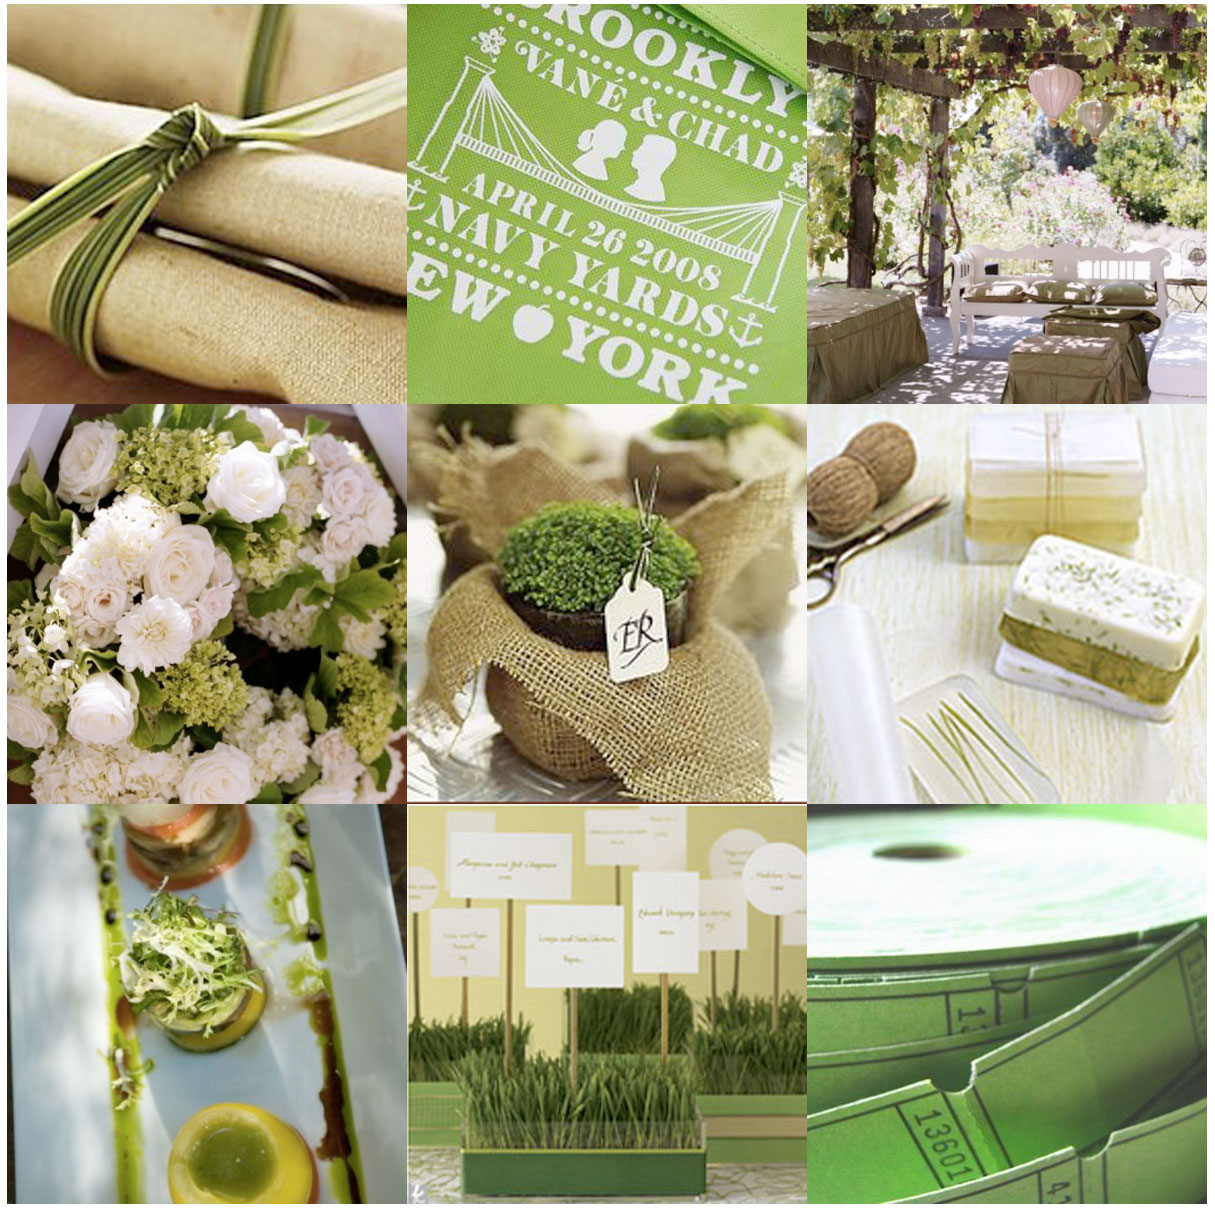 Wedding Ideas And Inspirations: Green Wedding Inspirations By K & K Designs